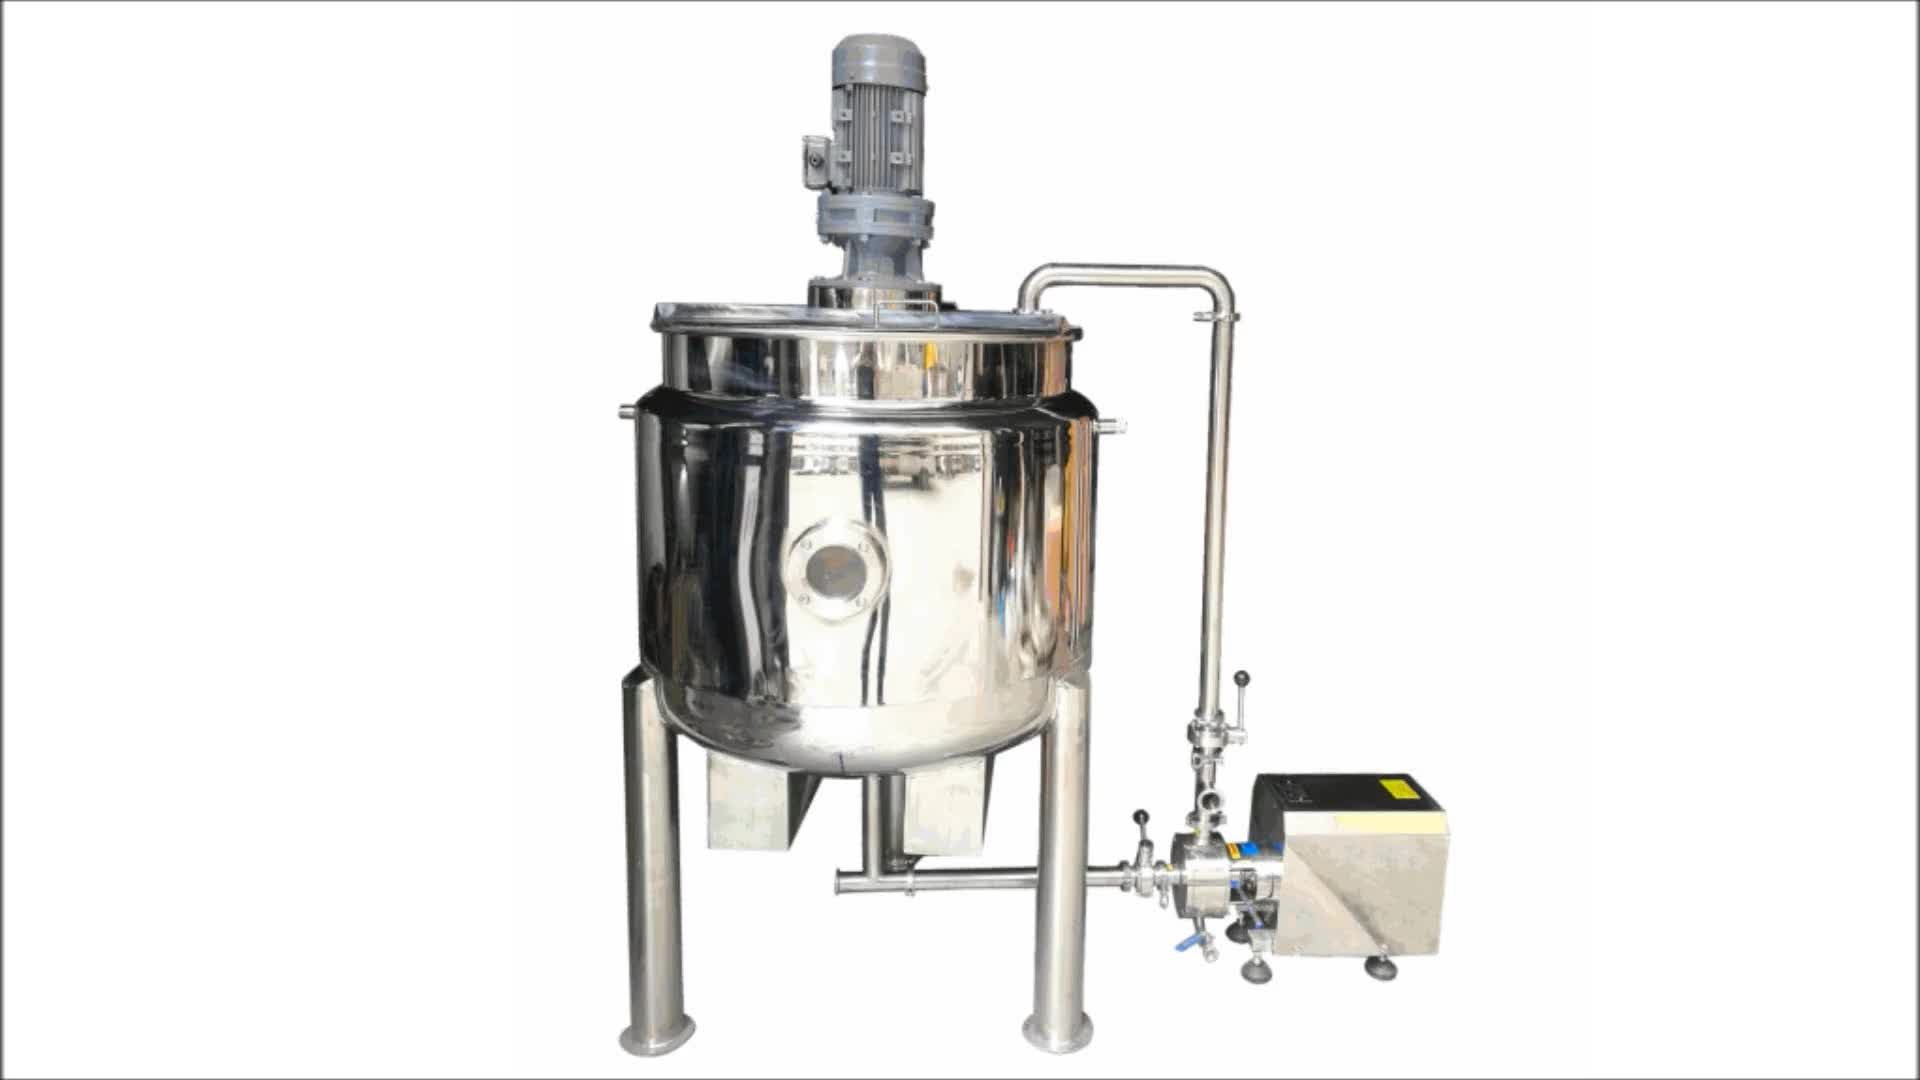 High quality stainless steel electric heating jacketed mixing tank 50 liter for sale